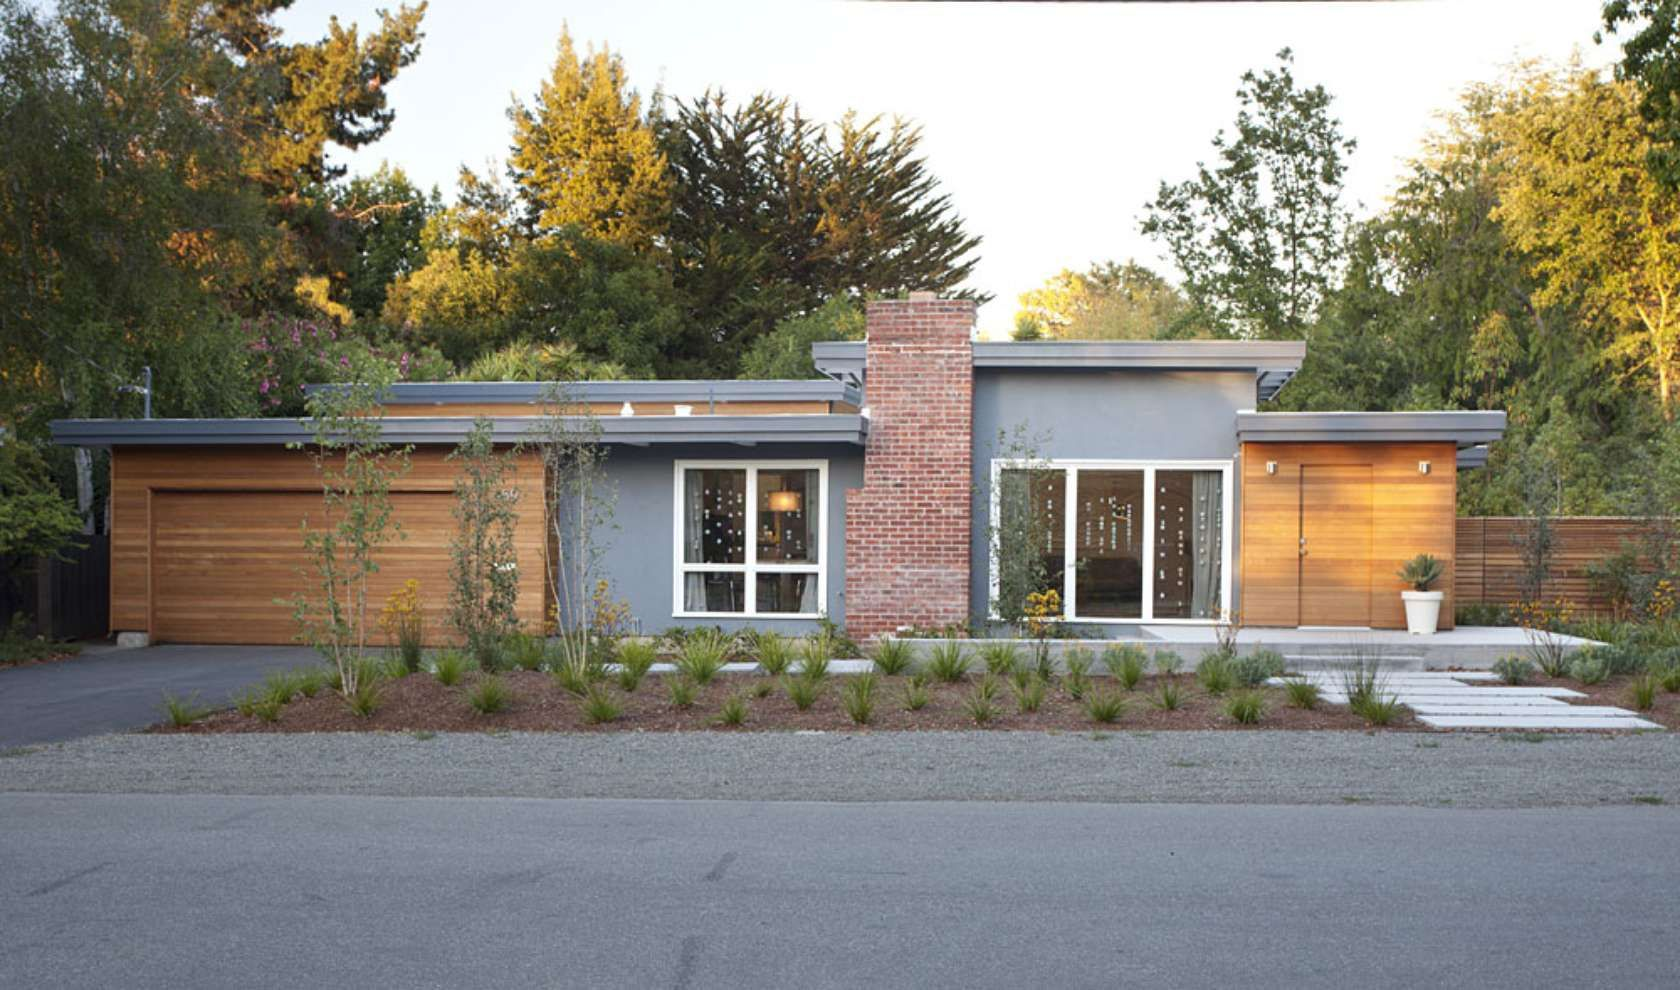 Modern ranch style early eichler expansion klopf for Modern painted houses pictures